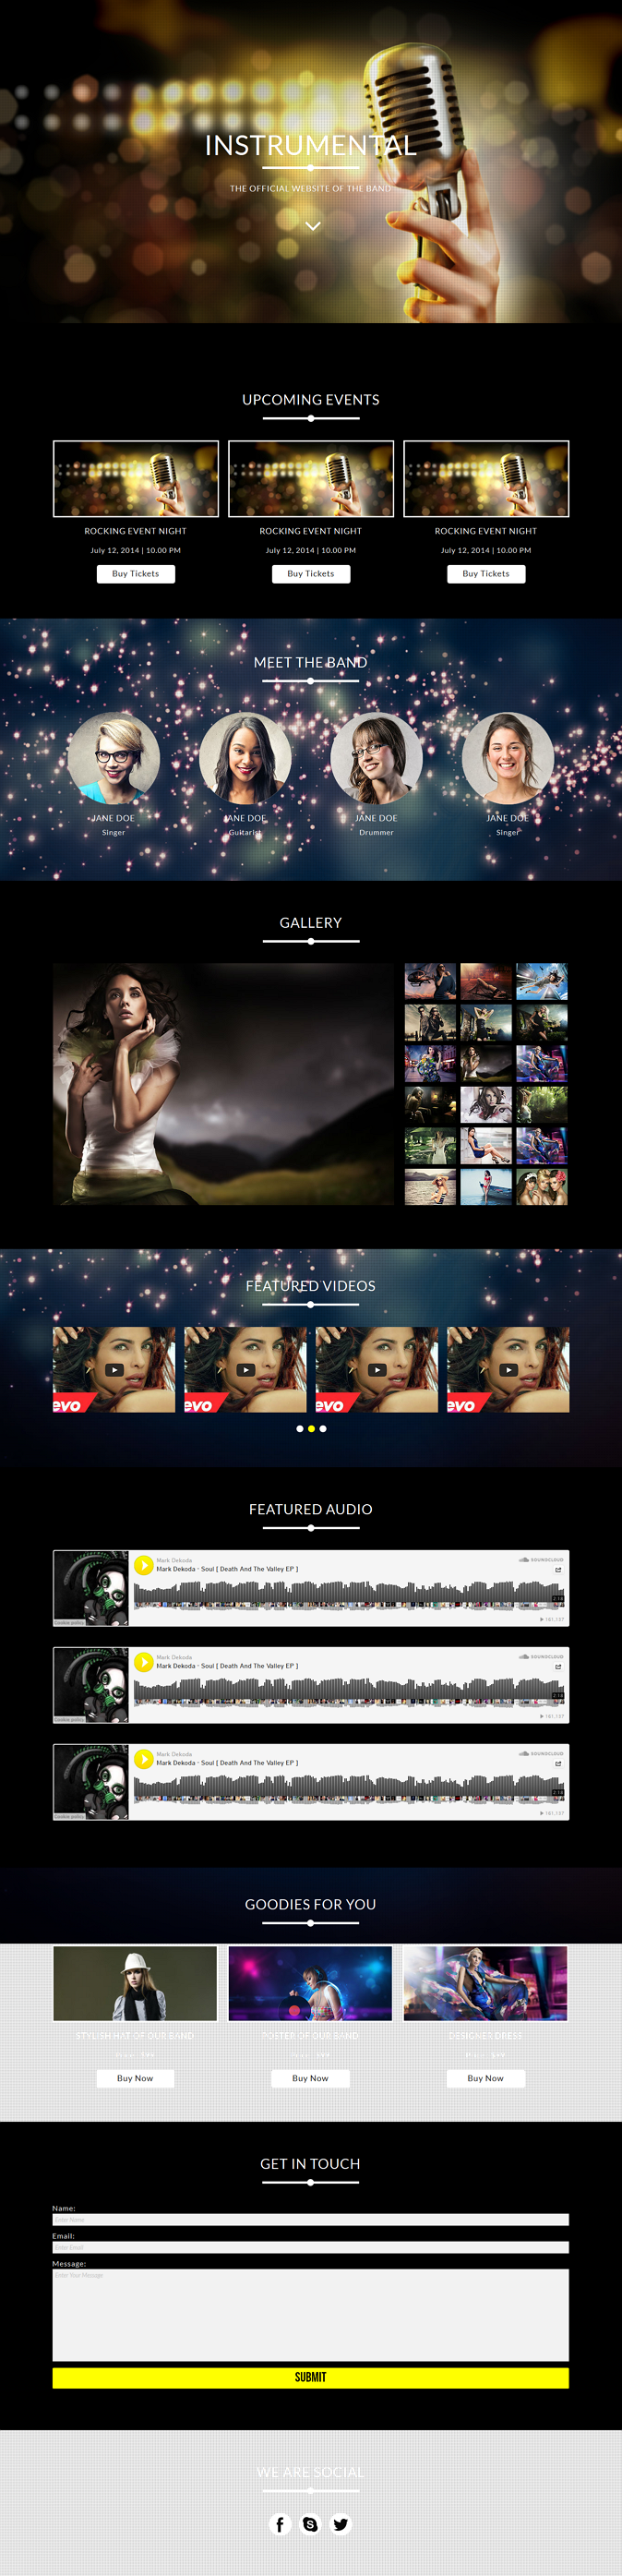 Instrumental is a Muse Template for band and music websites. It is powered by Gumroad eCommerce  ...